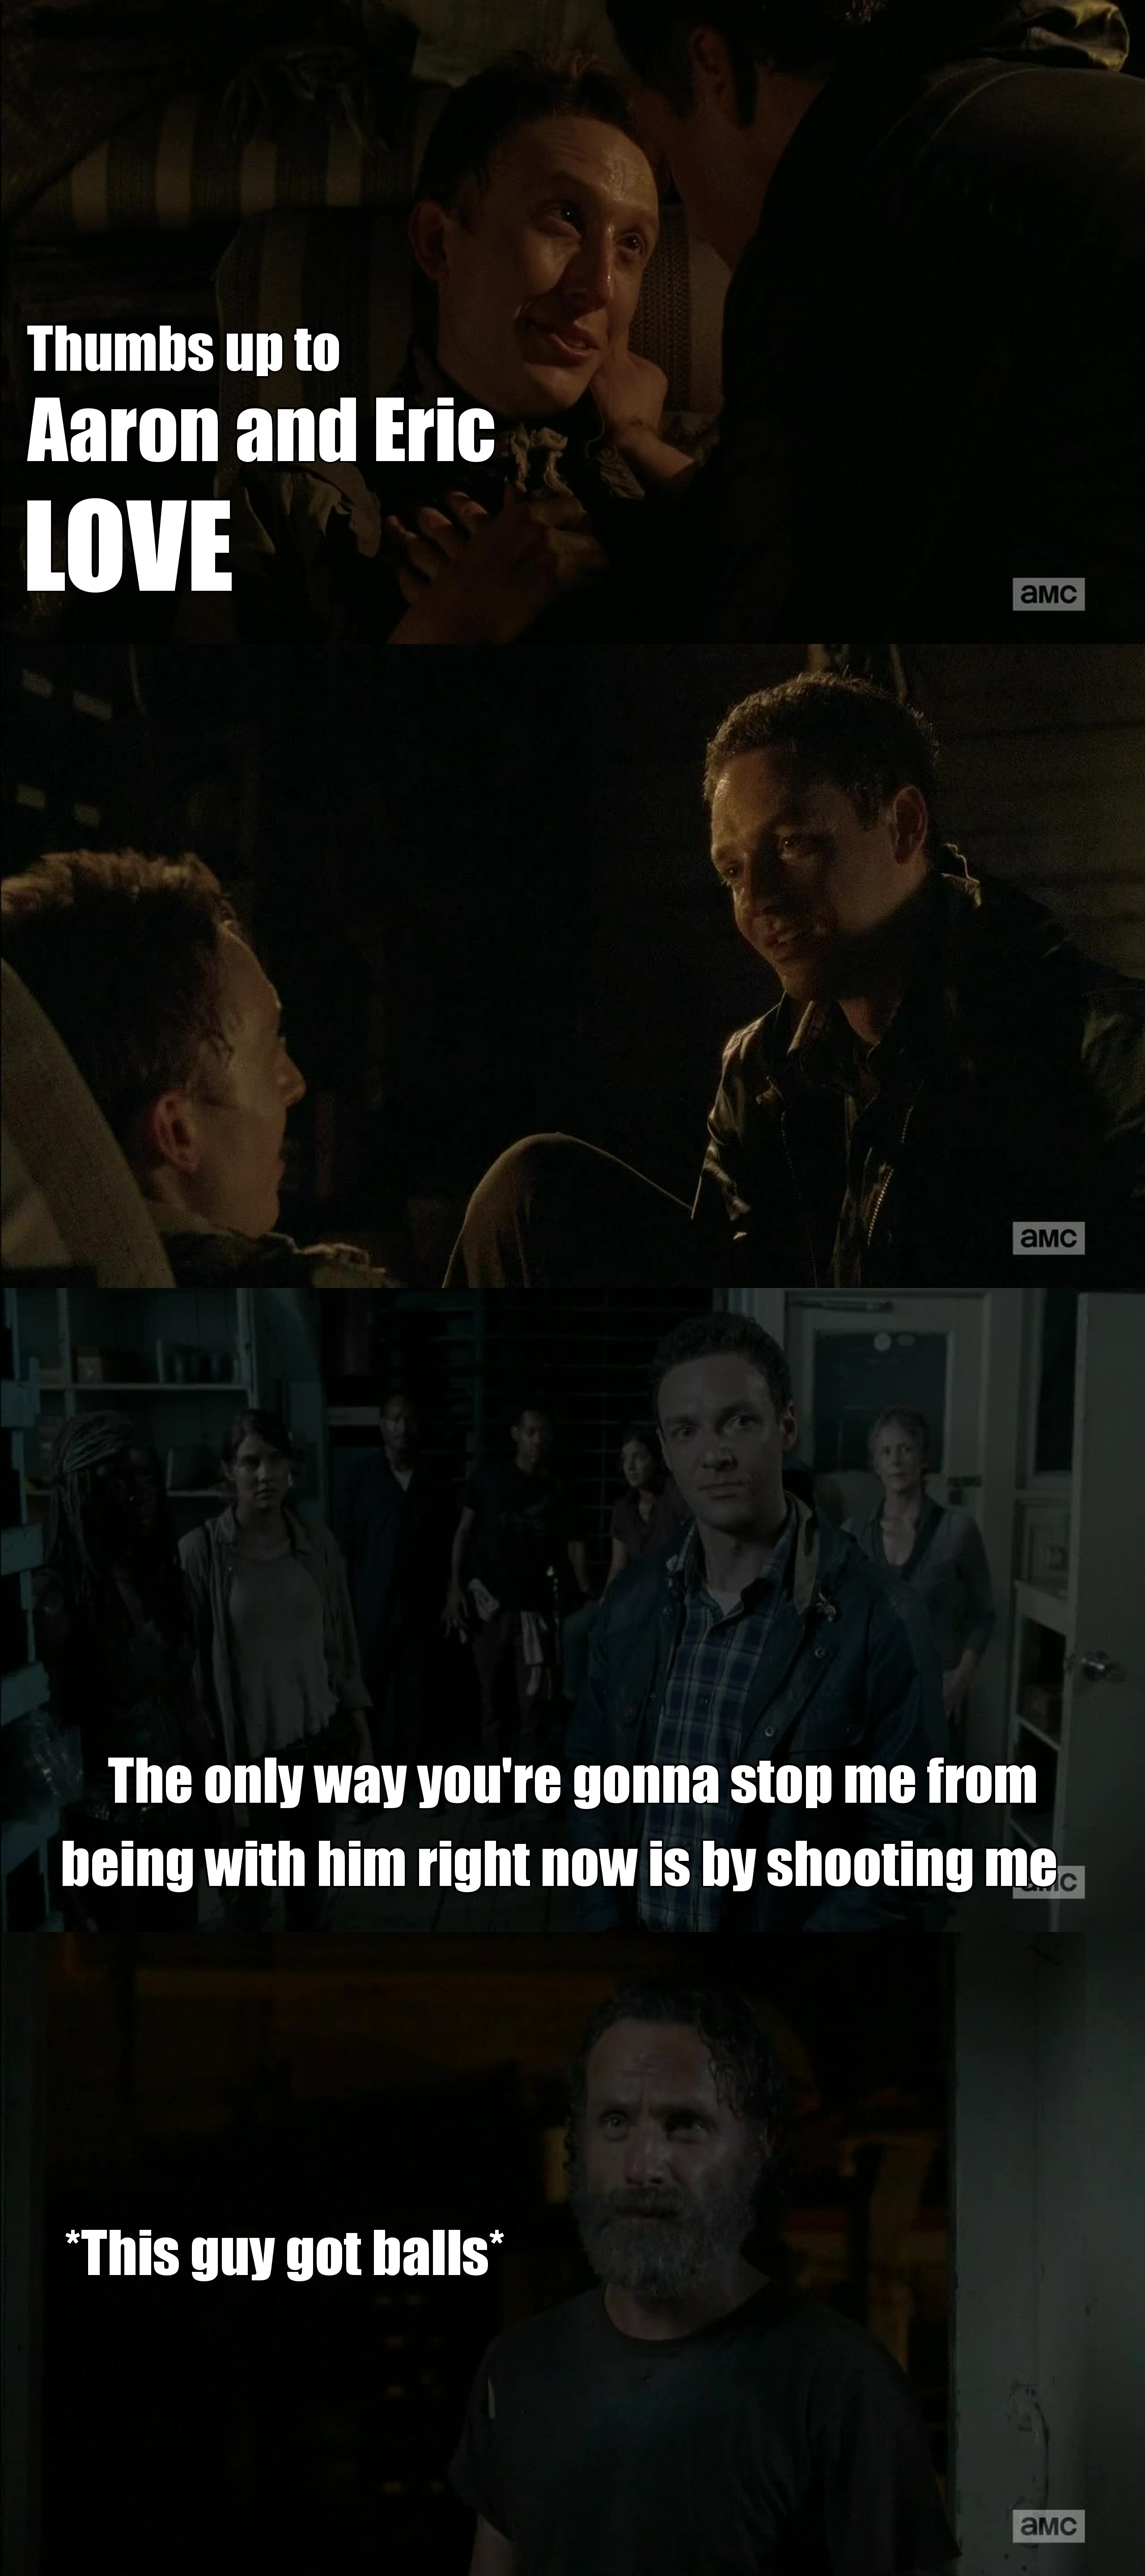 This episode was good and bold. I know homosexuality is present on a lot of TV shows from a long time now and despite me not being gay it's always nice to see a show like Walking Dead dealing with it too and, consequentially, helping people being at least more tolerant with those who love who they wanna love, despite the gender.   Love has no gender, so a big thumbs up to Walking Dead this season to showcase it in such a nice way from this two characters from the comics. Aaron is such a interesting character, even if we take only this episode alone. A true and honest guy on this apocalyptical world, something very rare. And the way he faced Rick when he couldn't be with Eric, that was nice as a development of this new and nice character.   Wish Aaron was on the character pool so I would vote for him this week. Finally a very good episode.